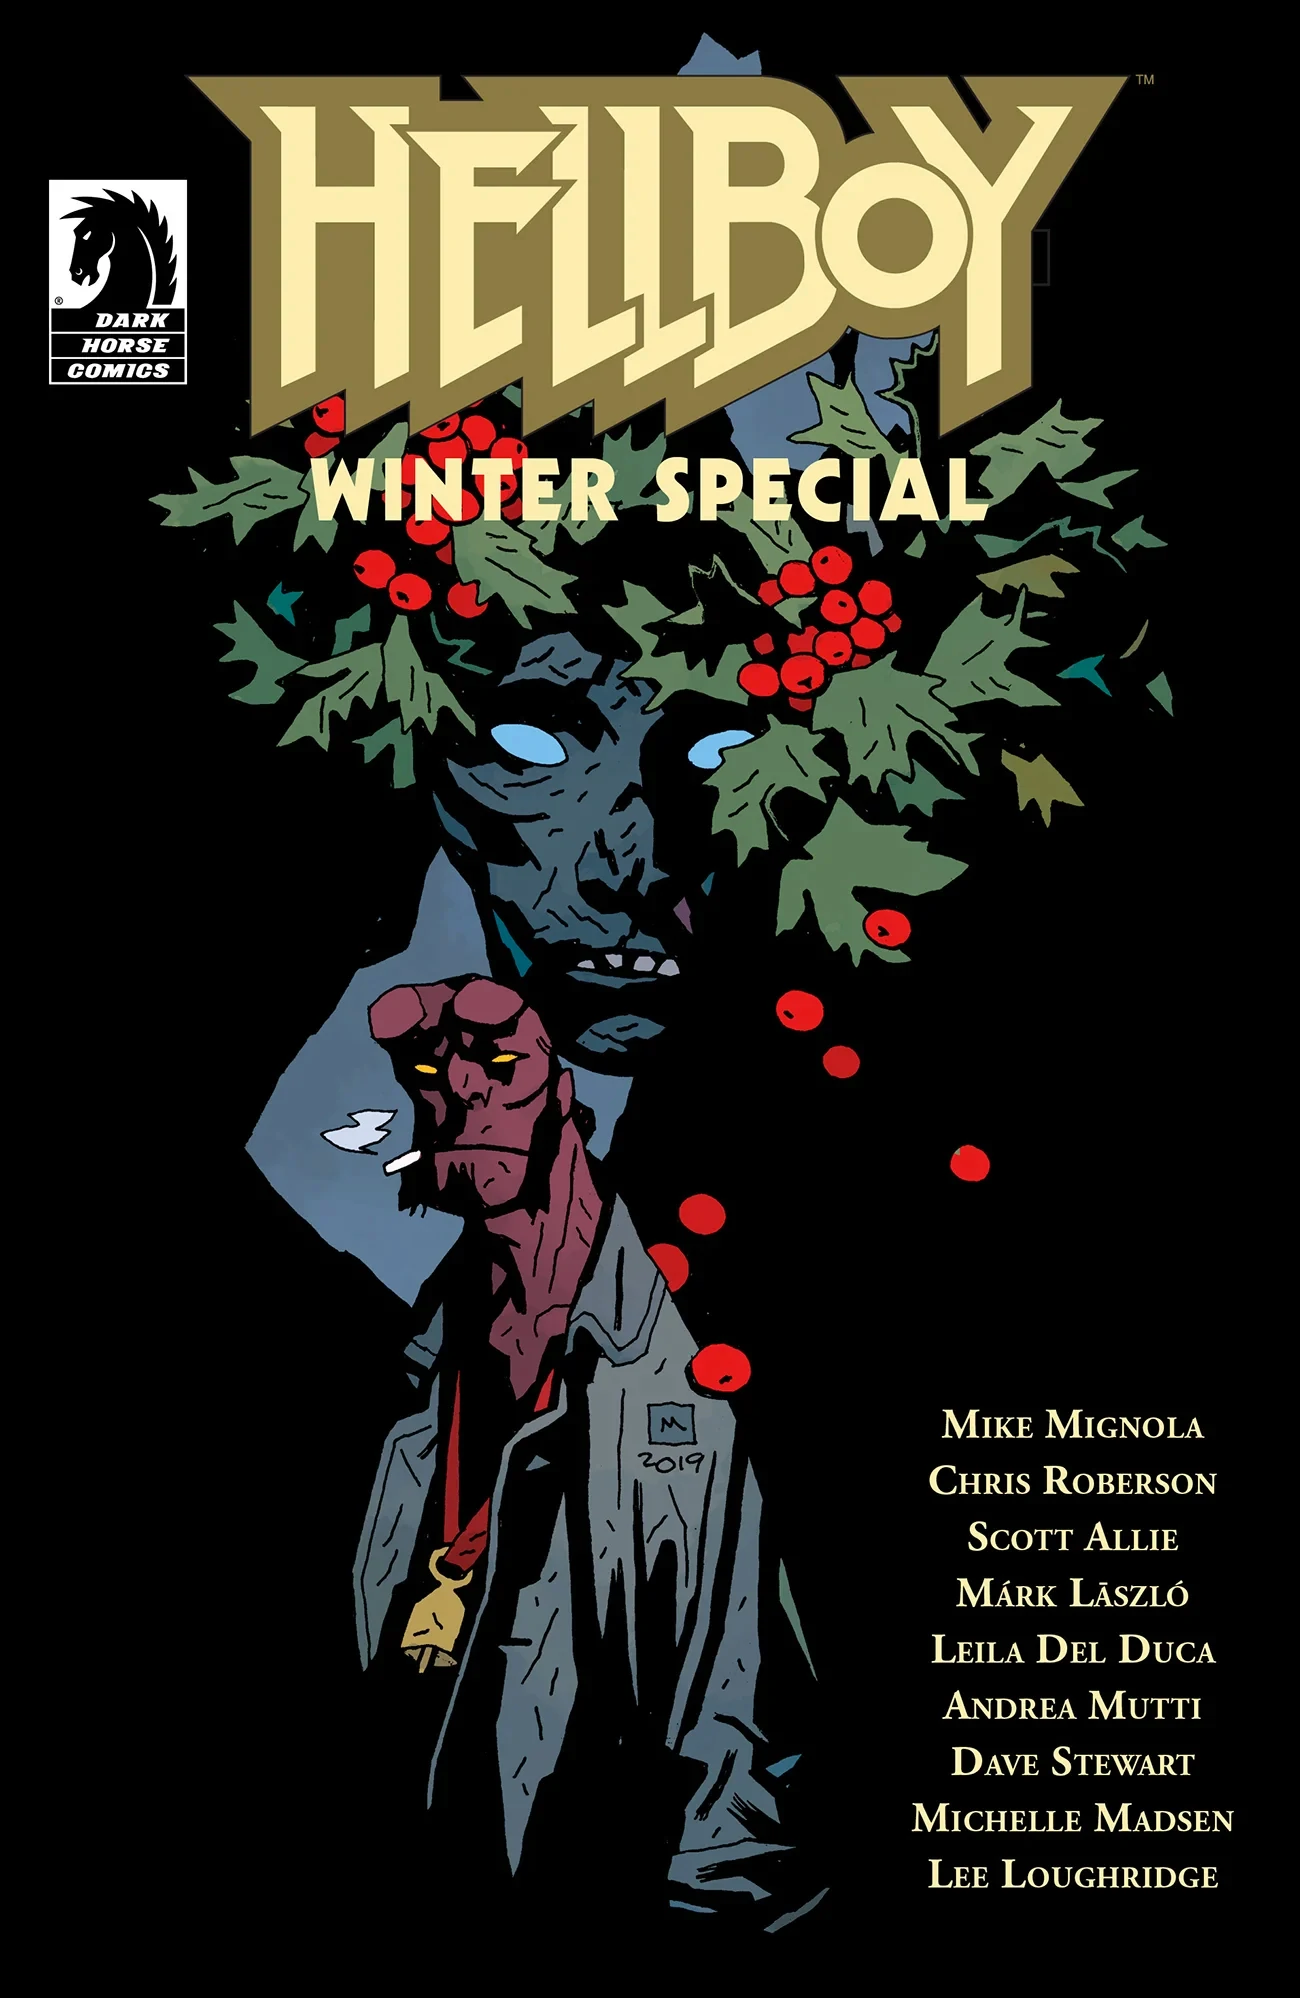 hellboy-winter_special2019.png